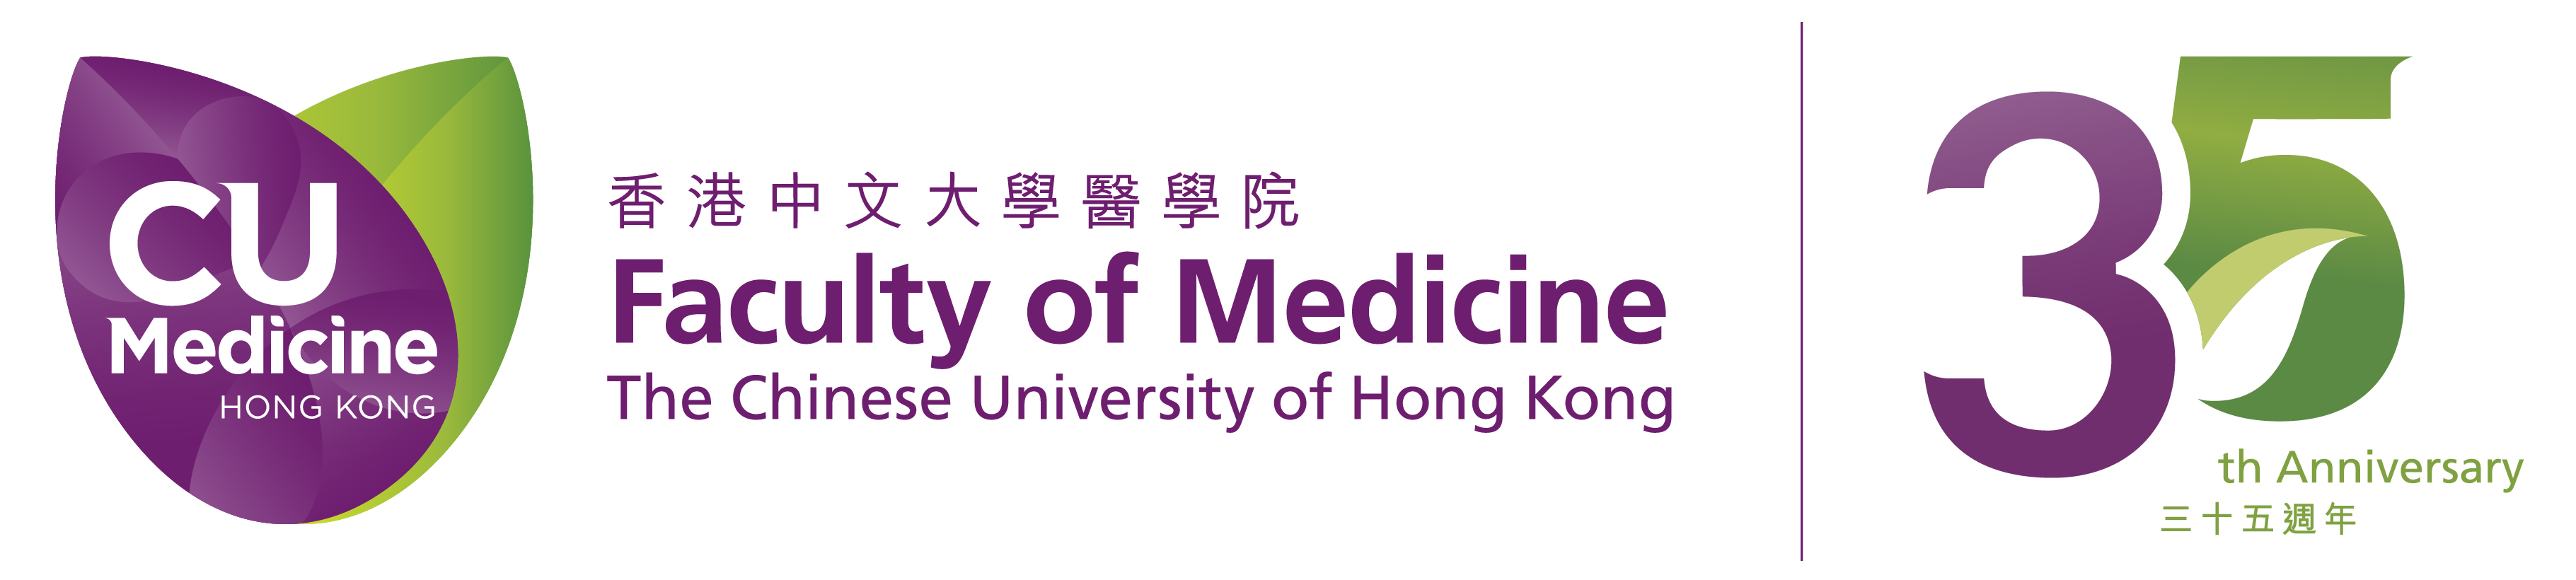 The Chinese University of Hong Kong - Prince of Wales Hospial - IDF Centre of Education